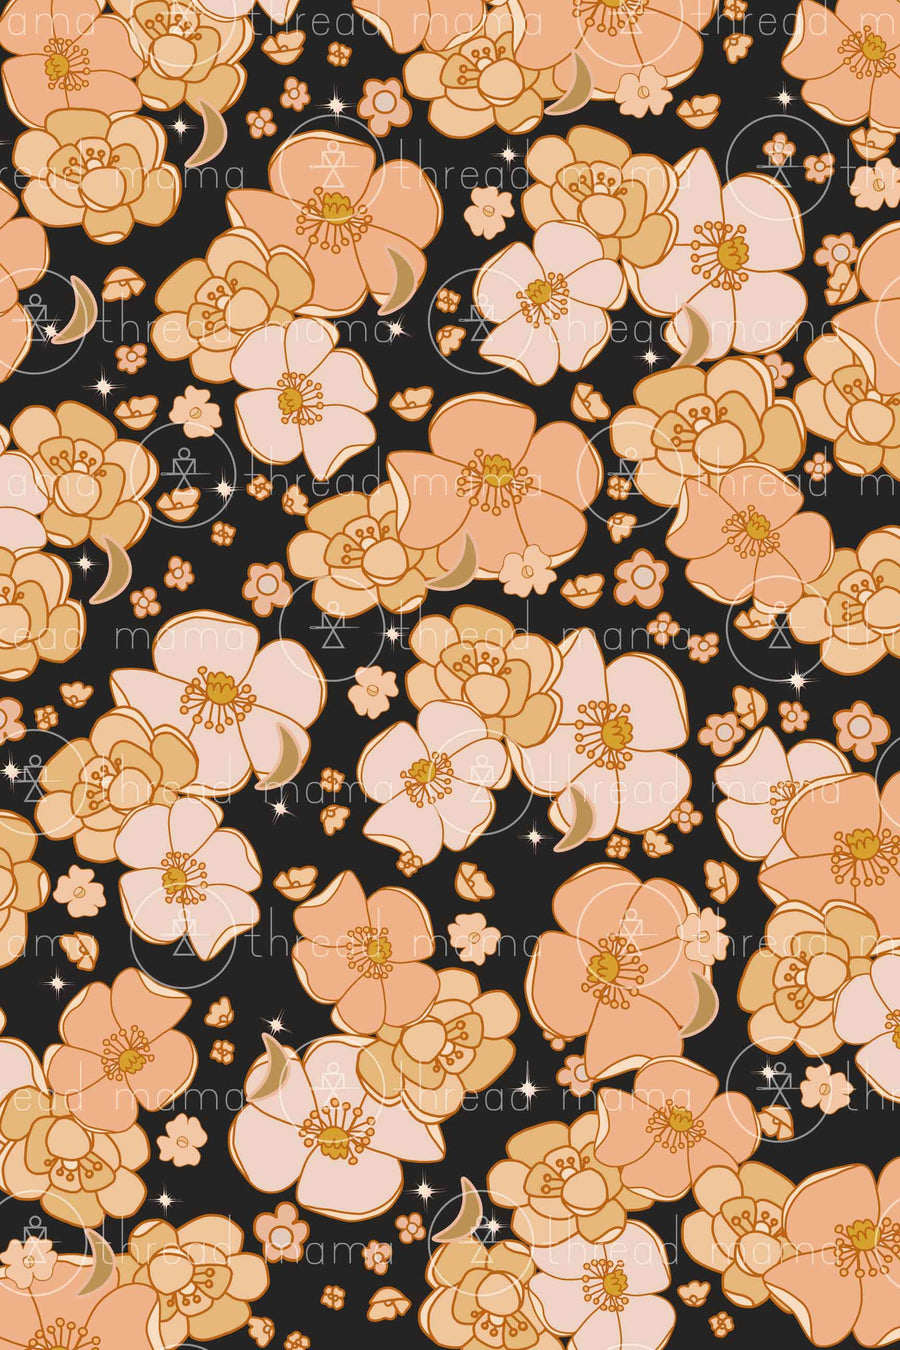 Fall Floral Background 1 (Printable Poster)